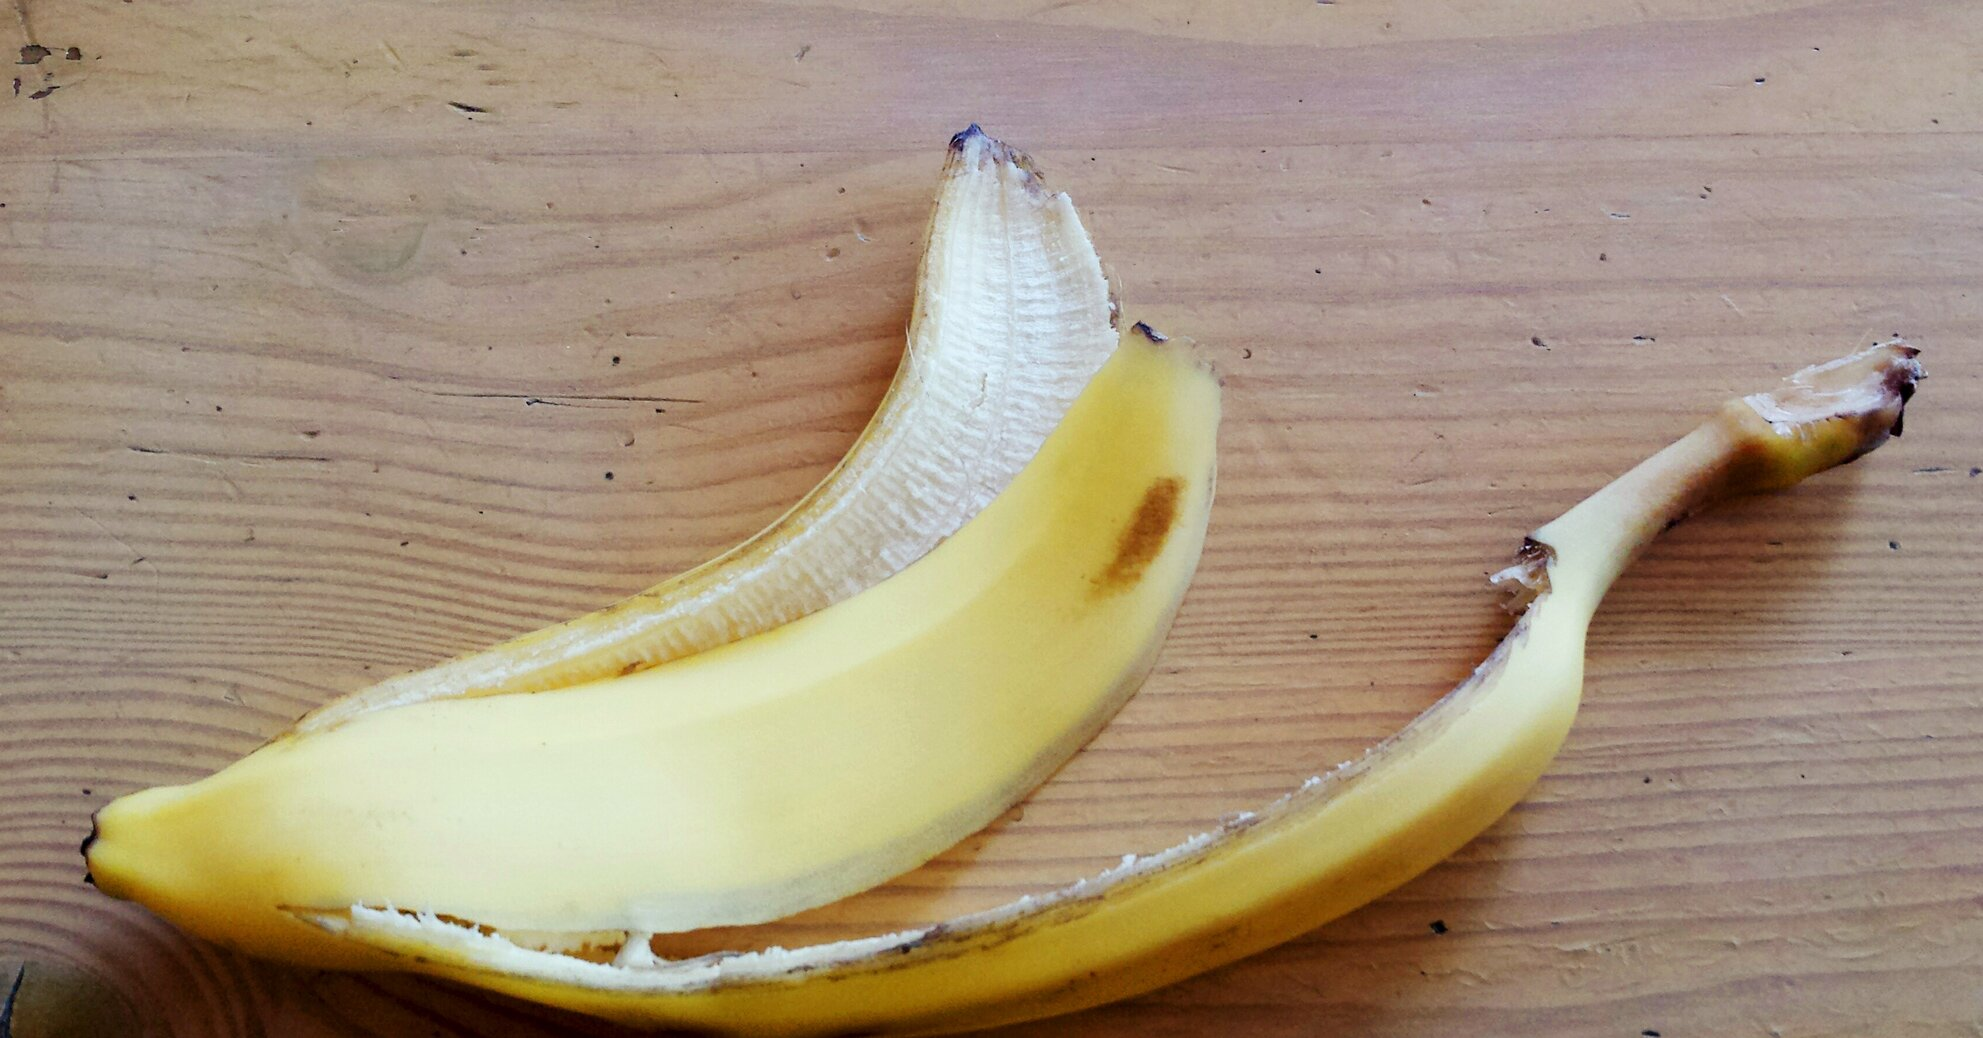 Can You Use Banana Peels to Fertilize Your House Plants?